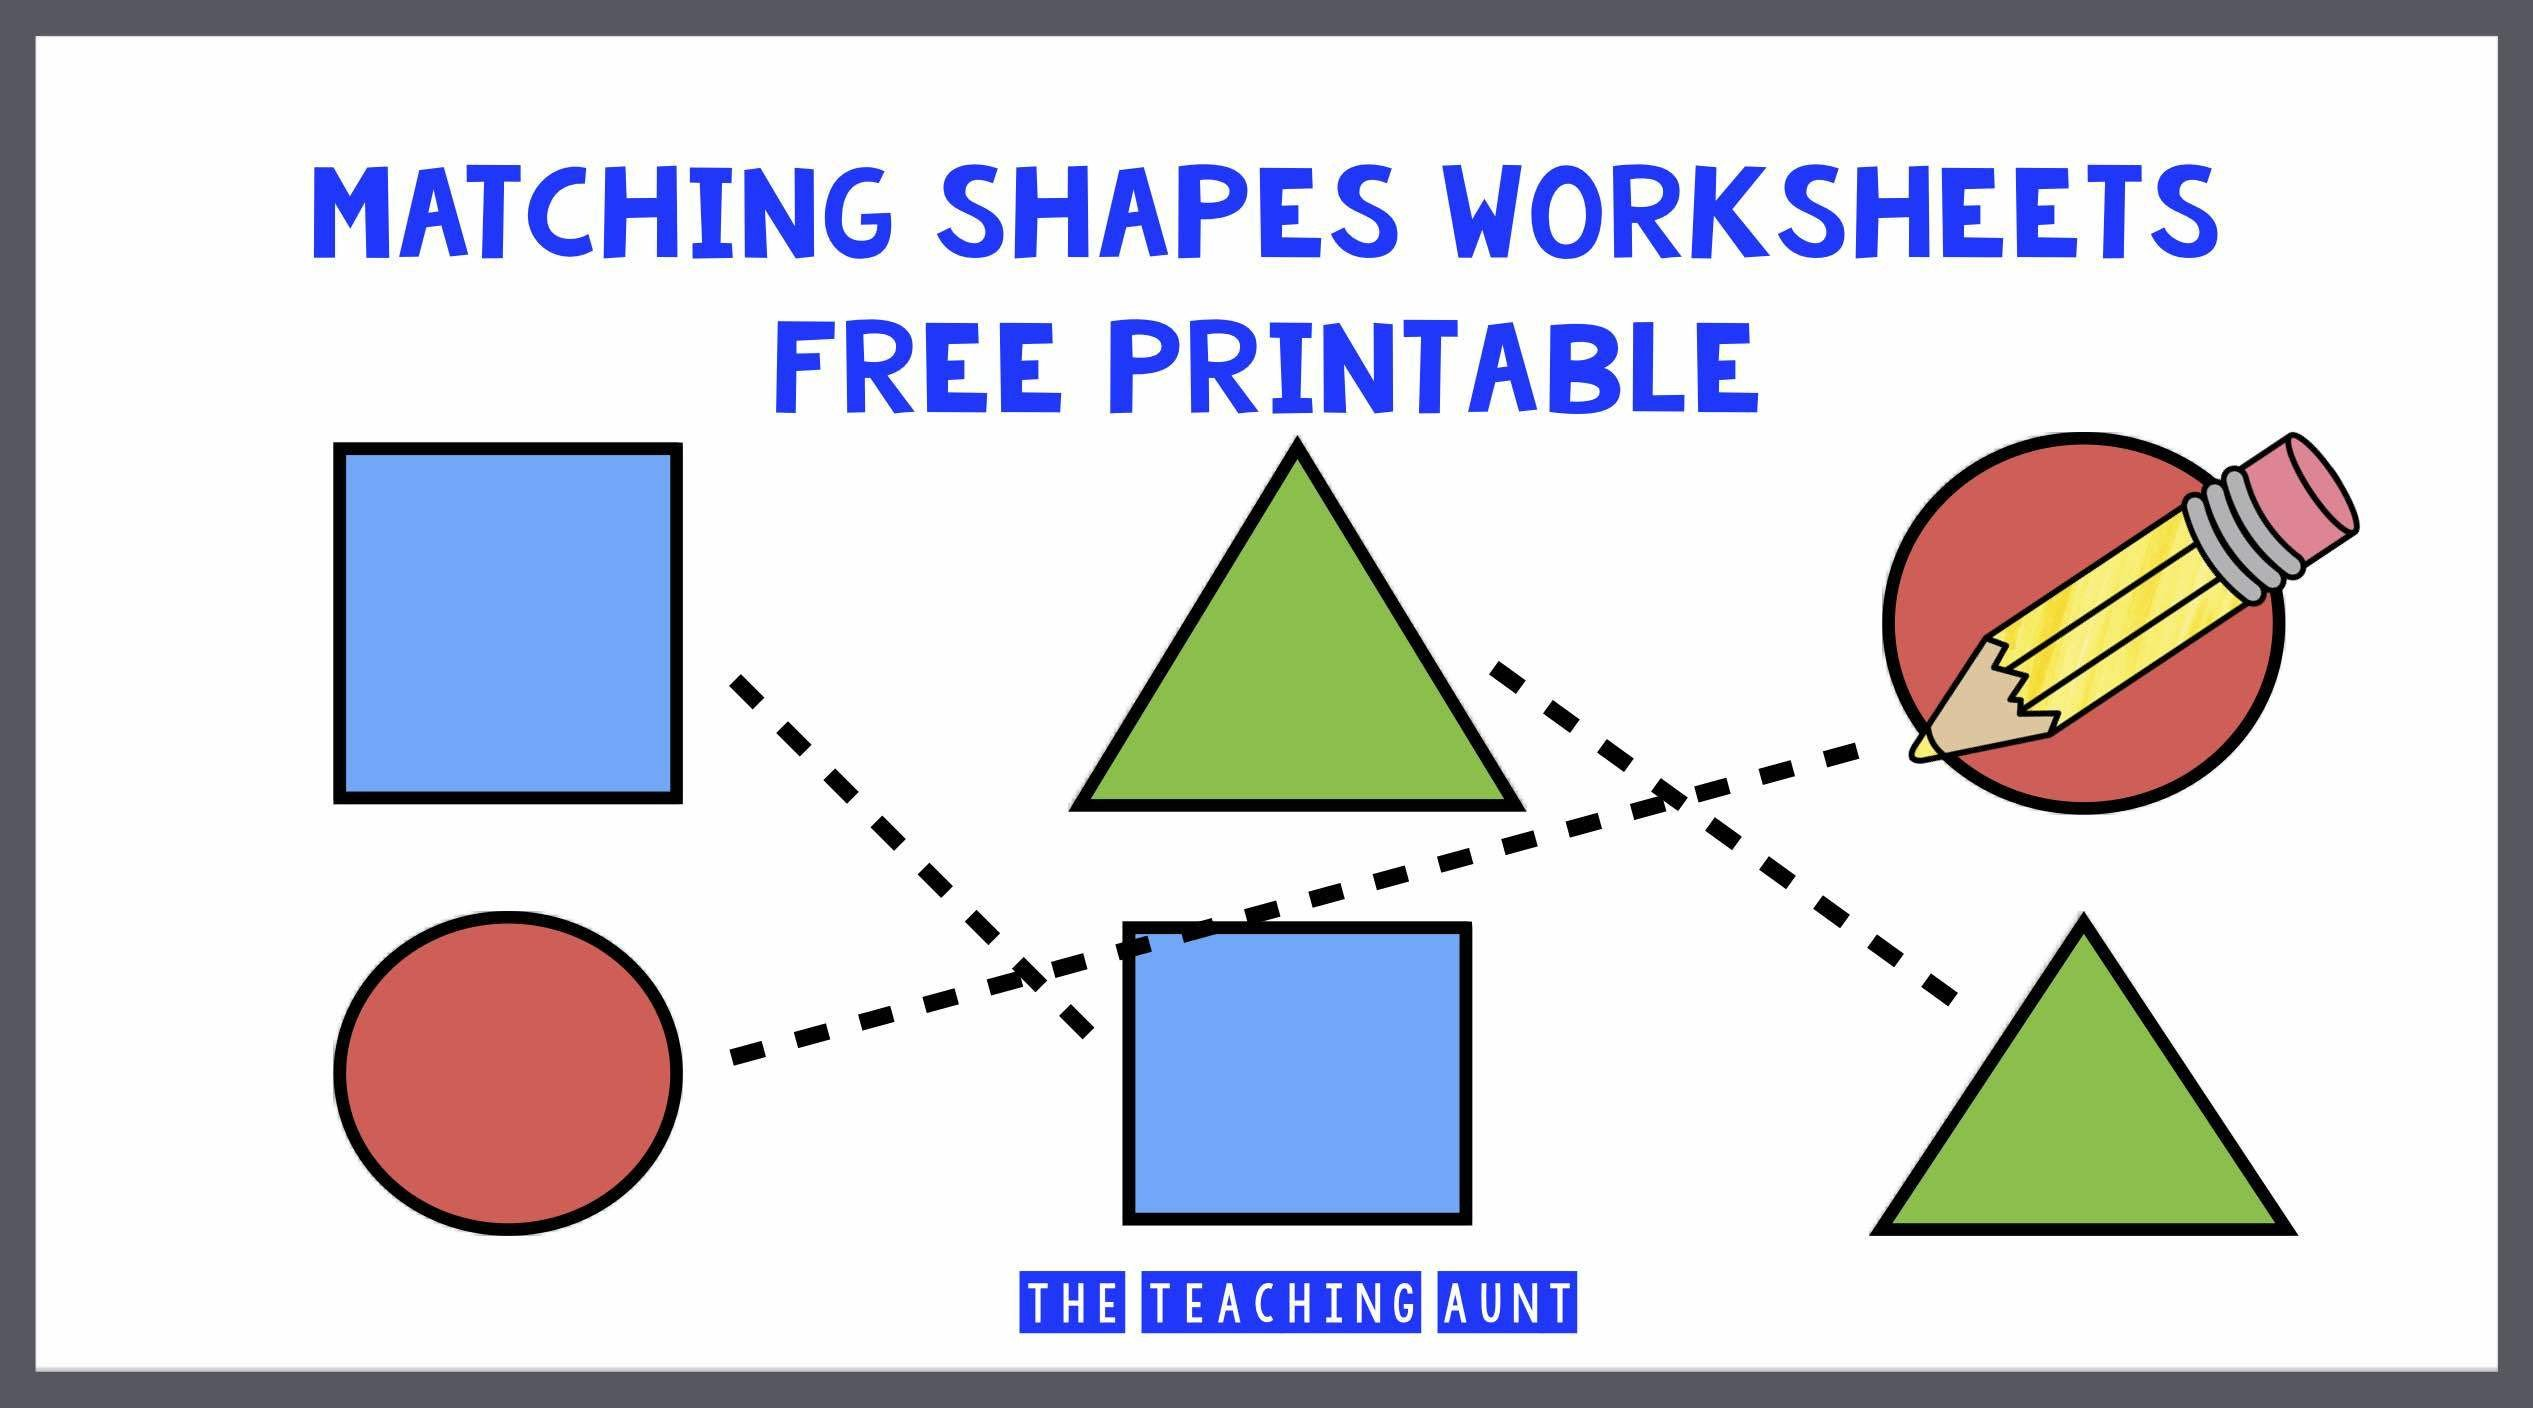 Kindergarten Shapes Worksheets Free Matching Shapes Worksheets the Teaching Aunt